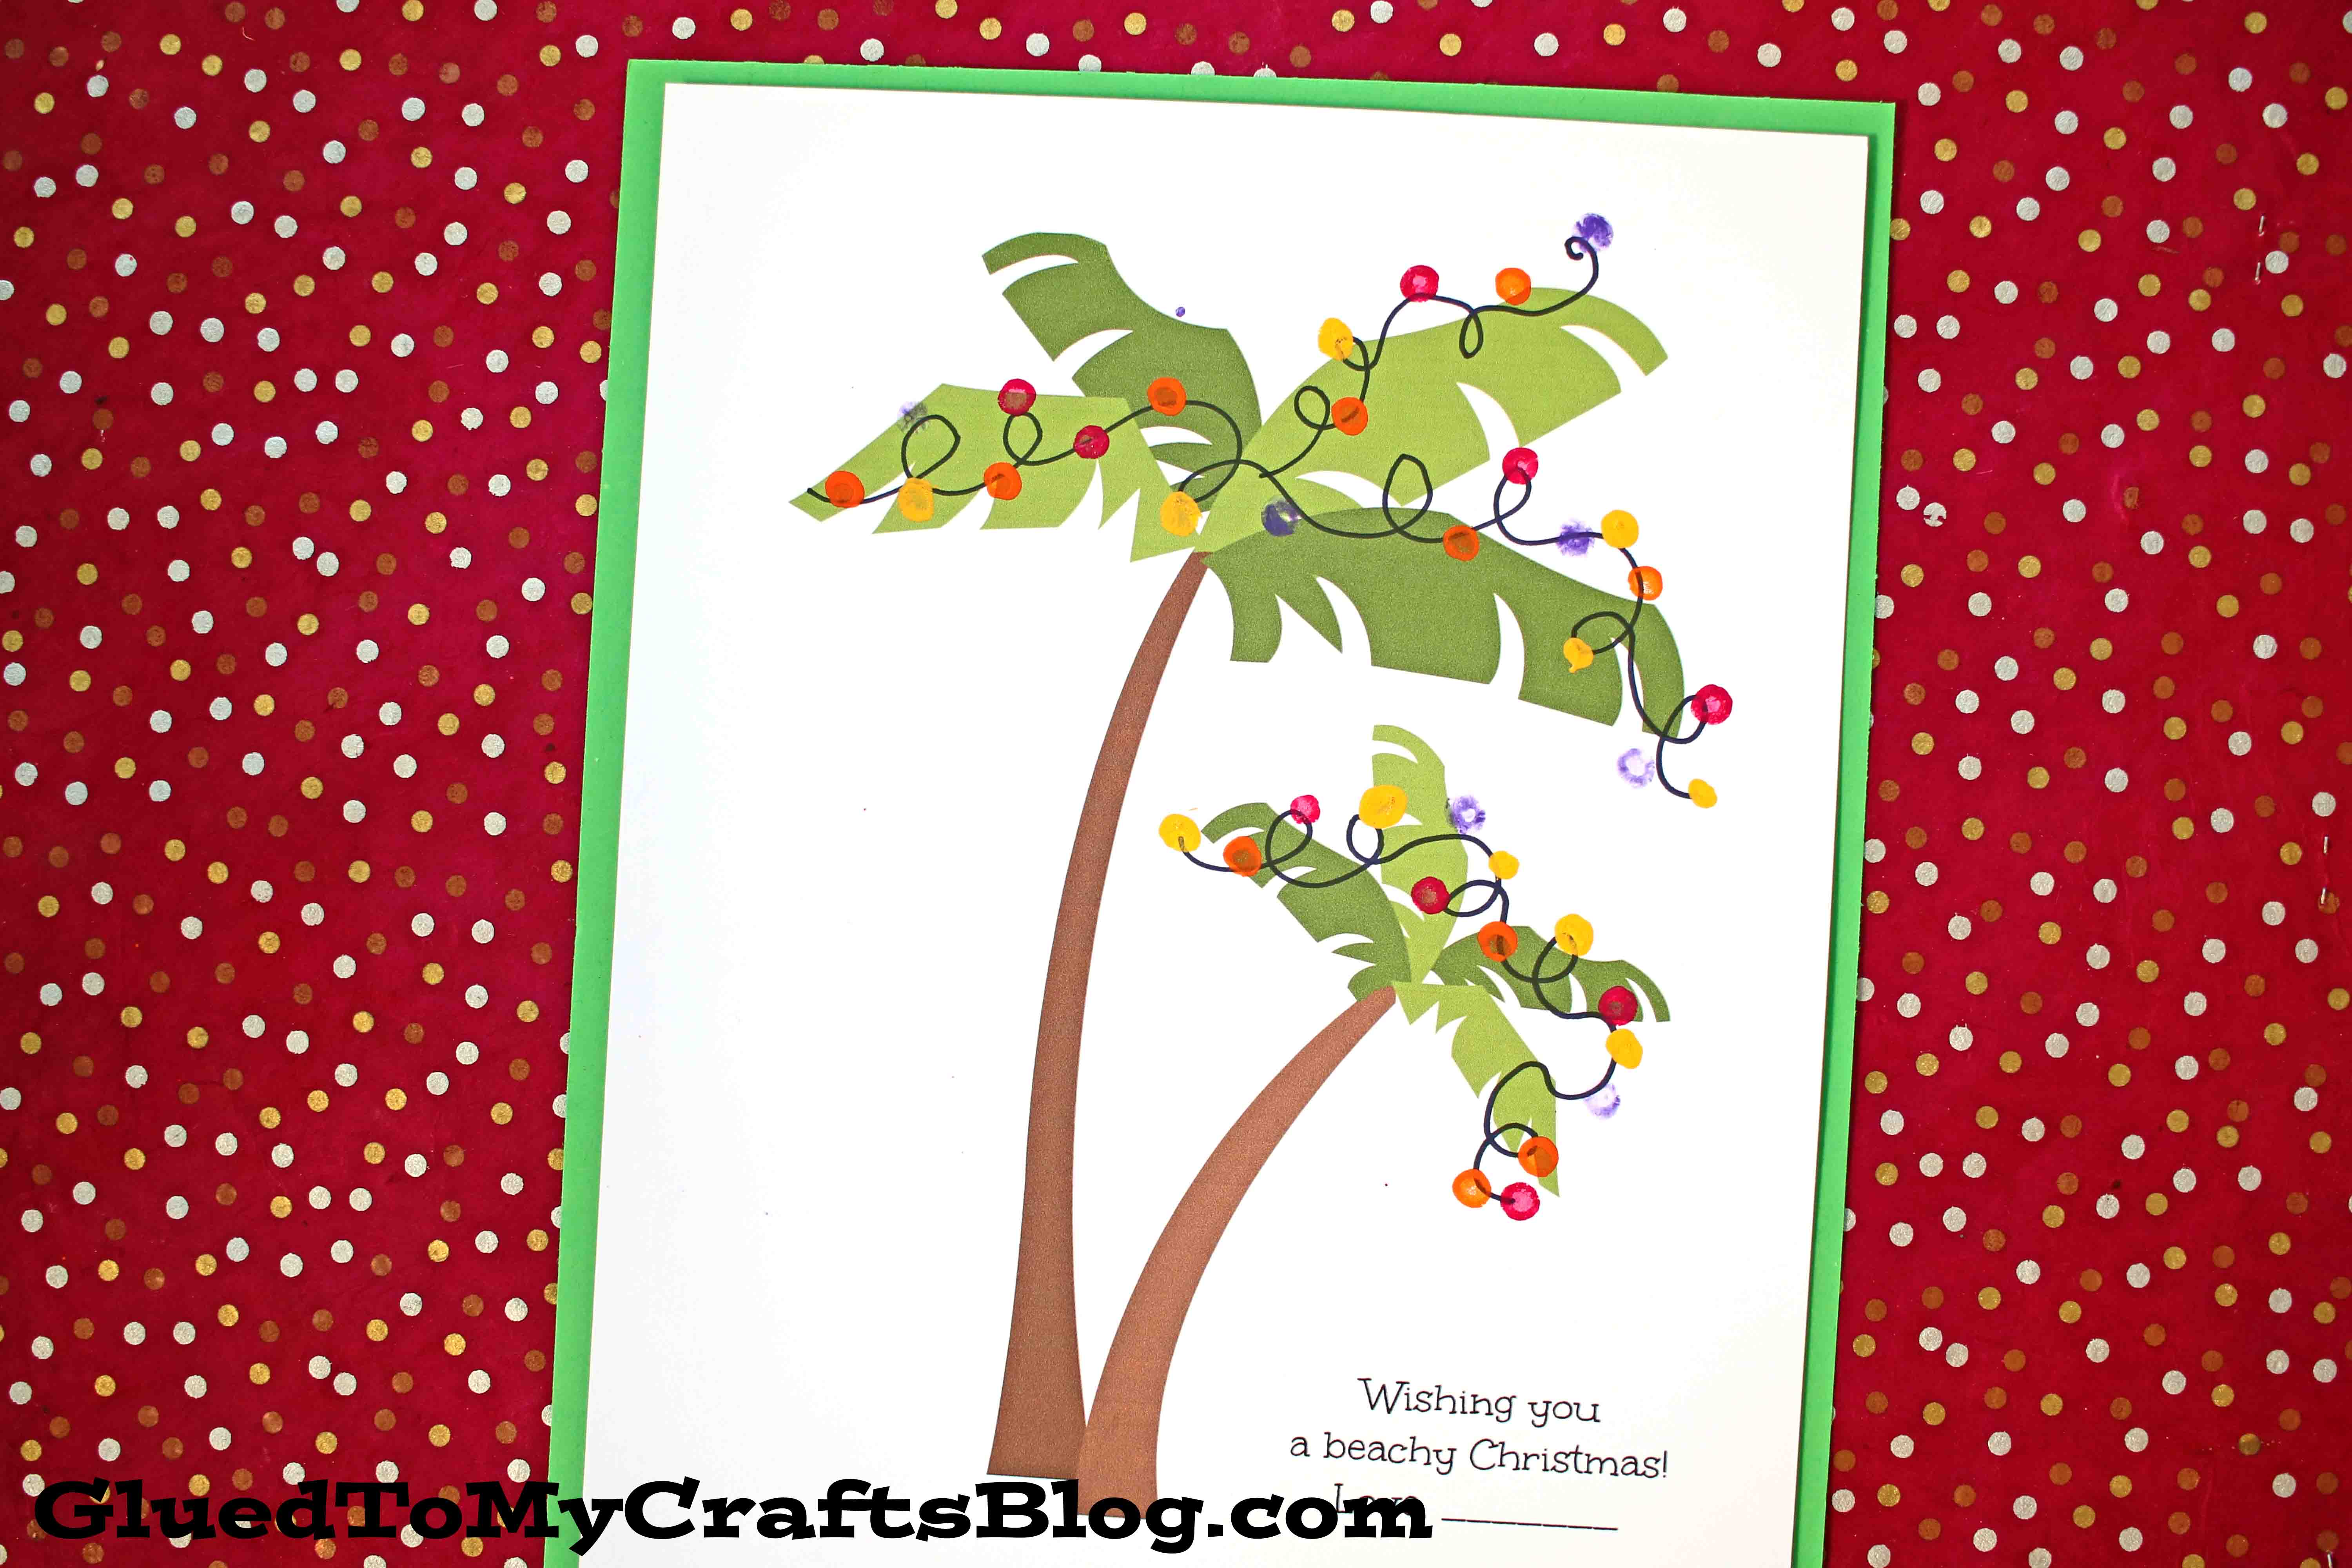 Q-Tip Painted Christmas Palm Trees - Kid Craft